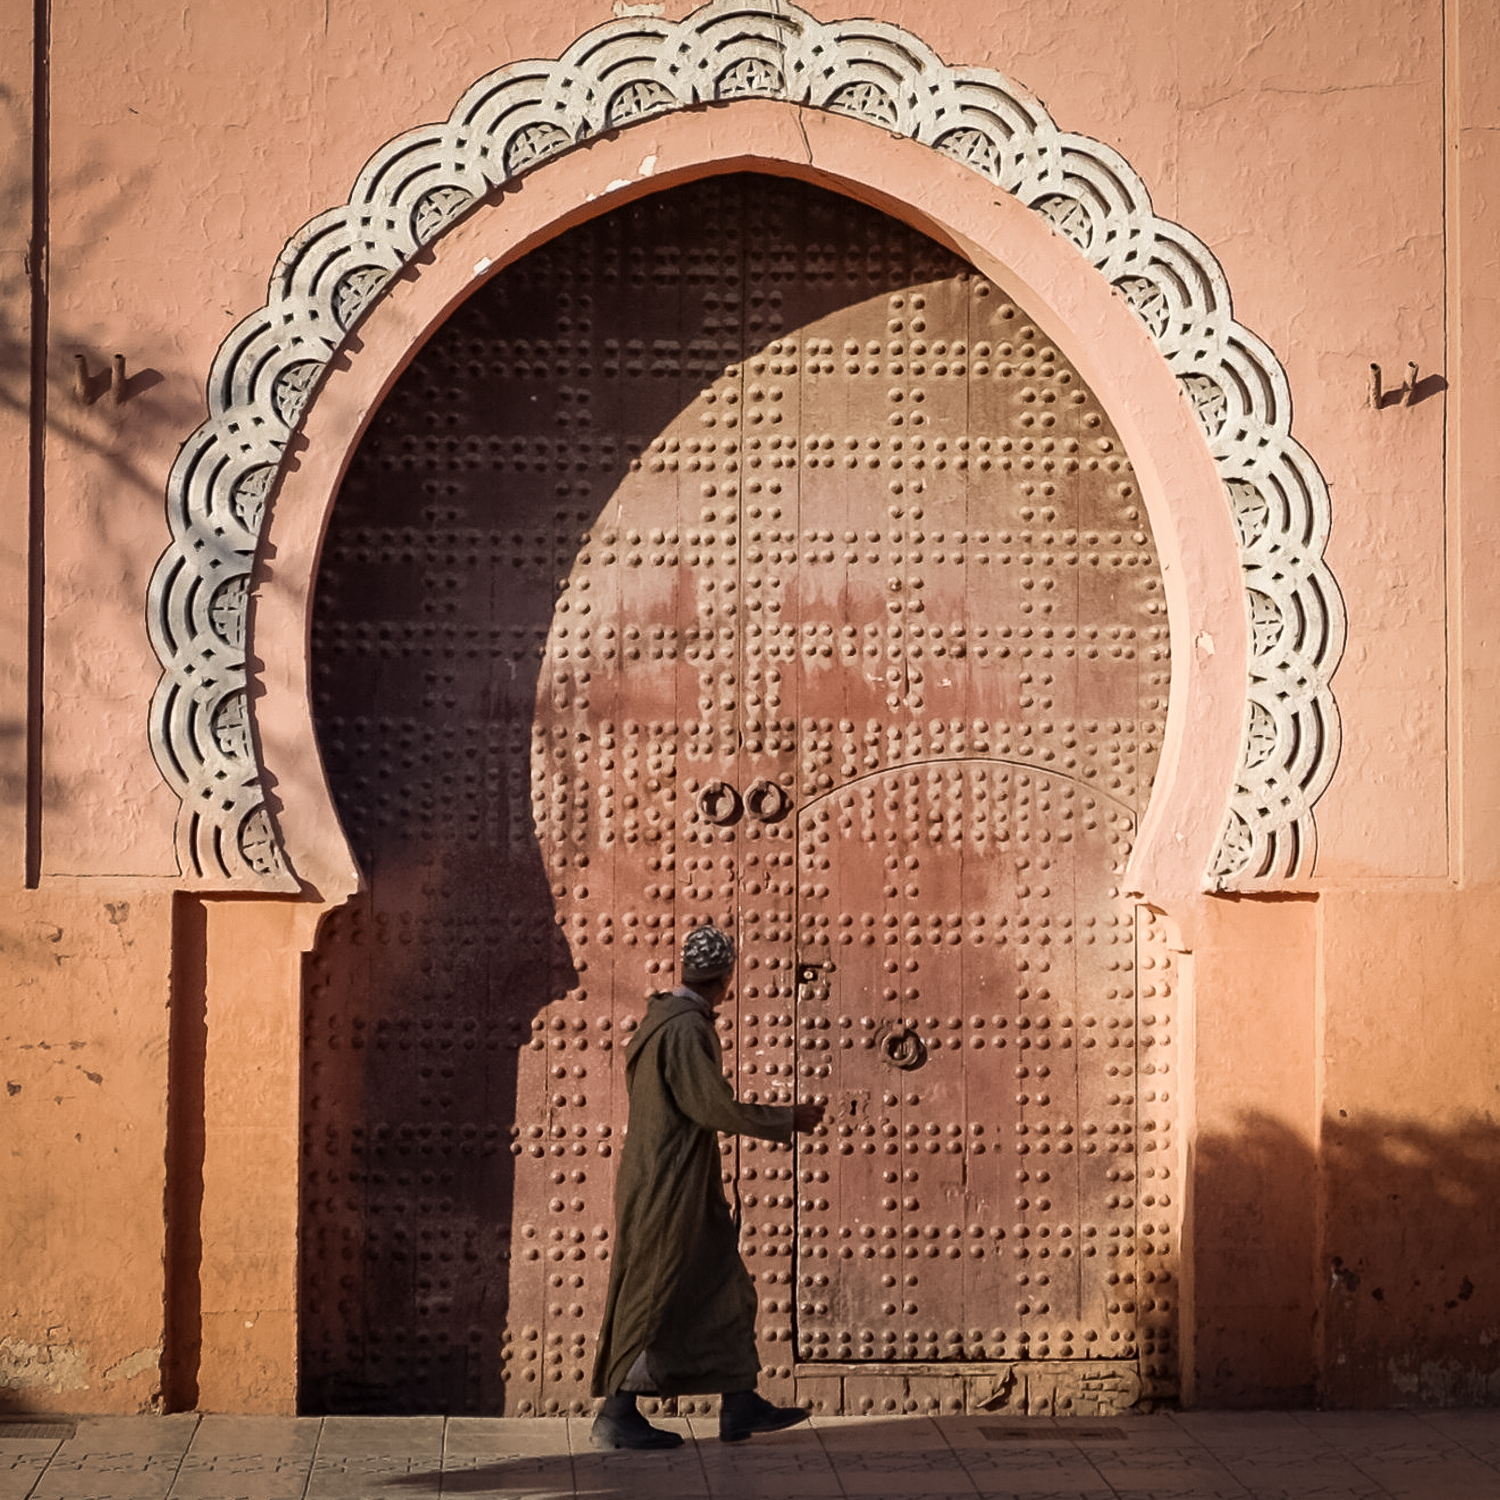 Christopher-Swan-Marrakech-2.jpg